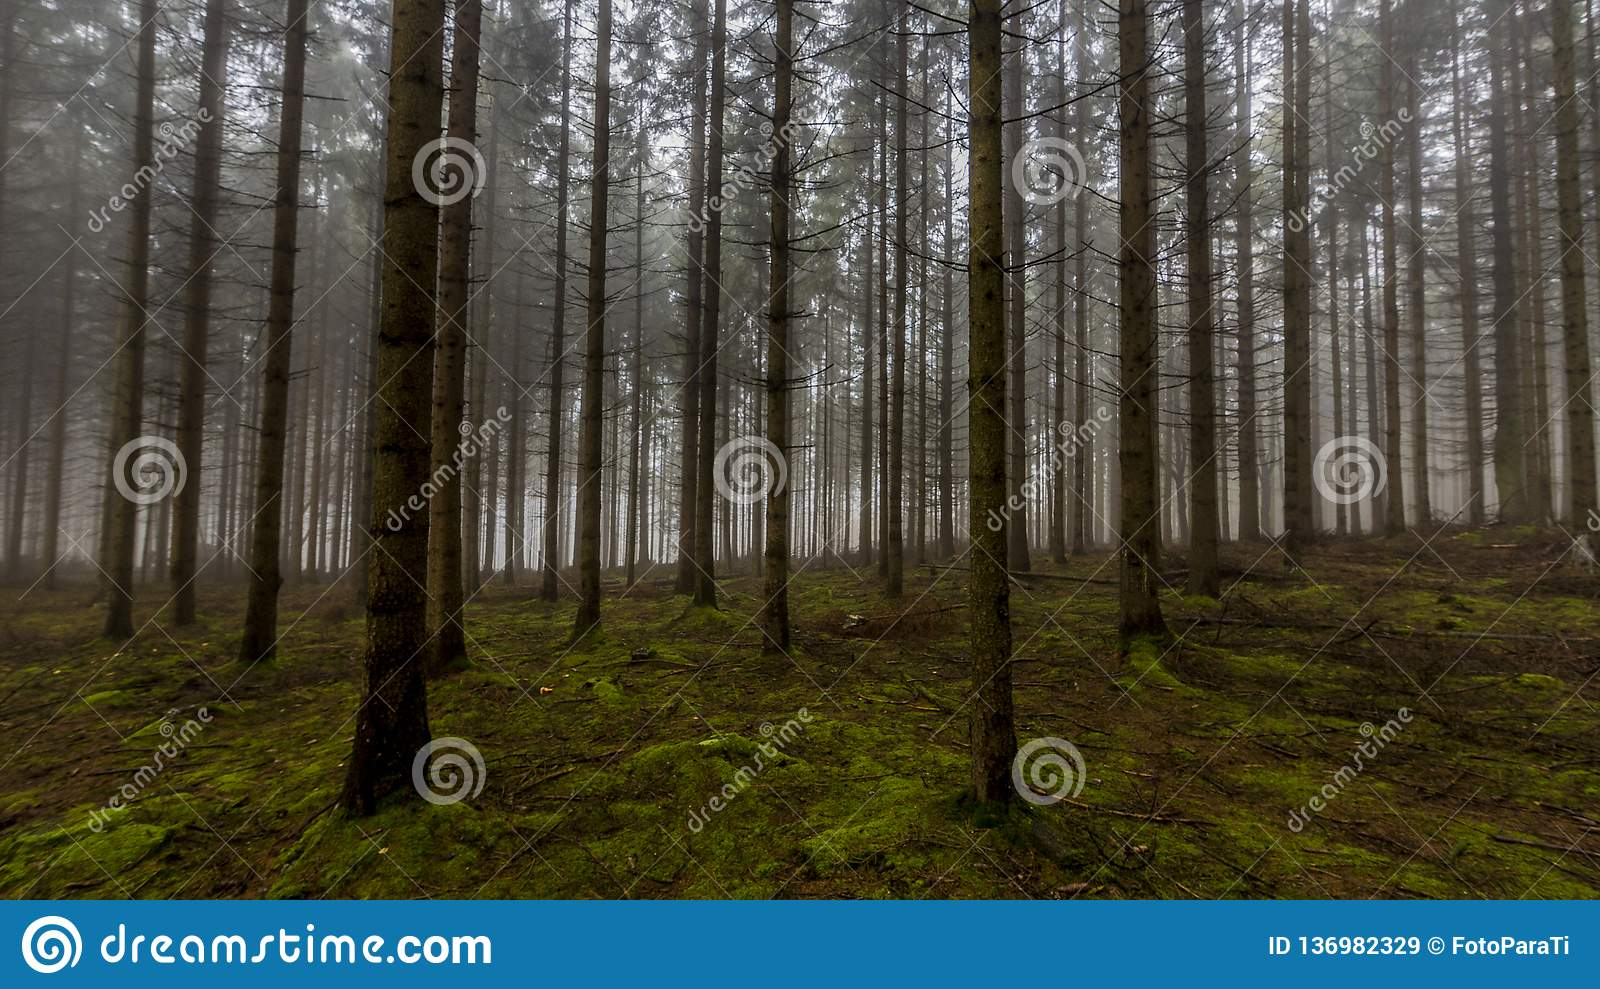 Amazing image of tall pine trees in the forest with moss on the ground in the forest